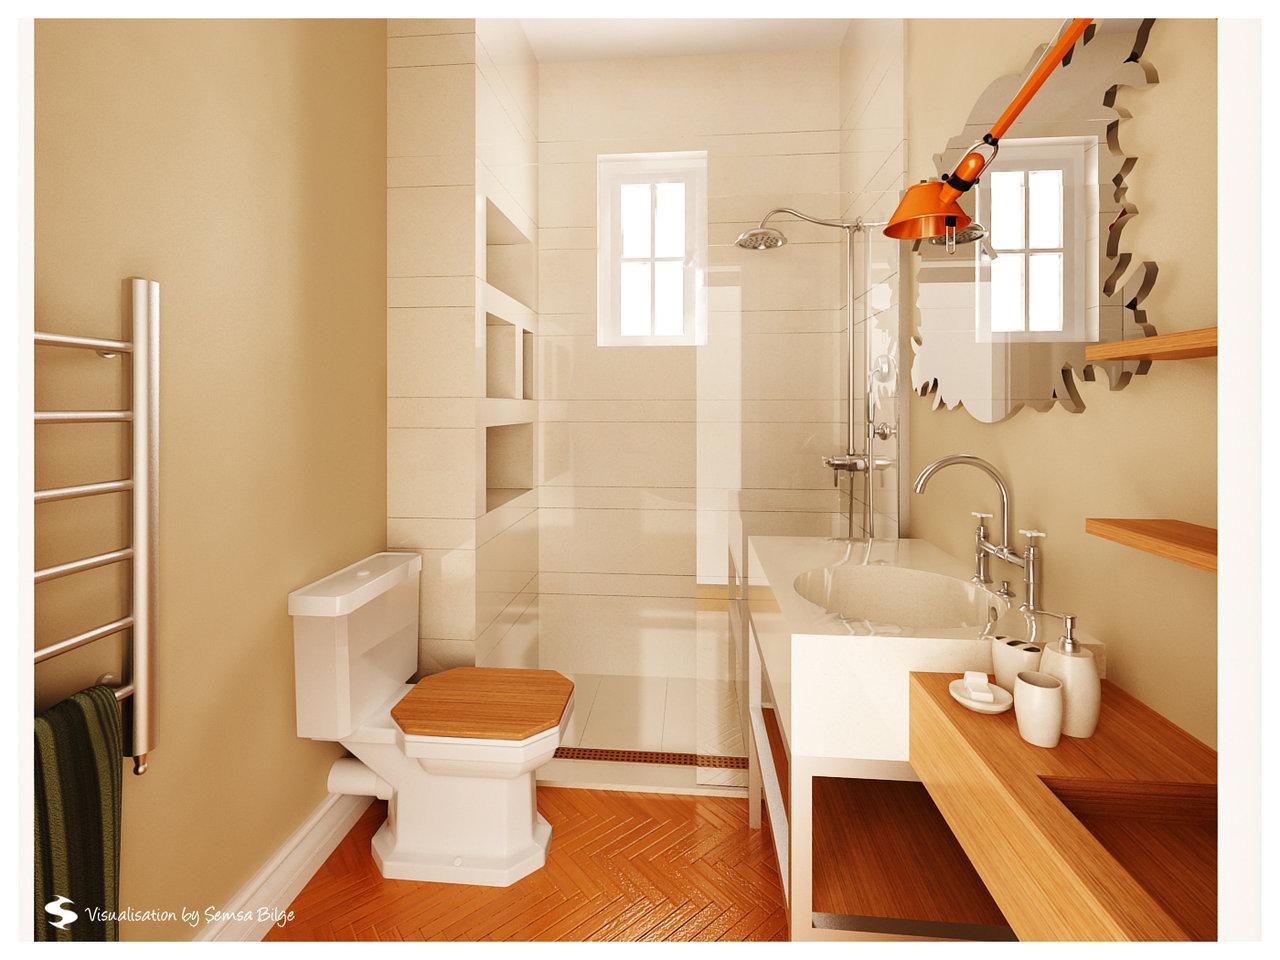 Bathroom with orange colored floor